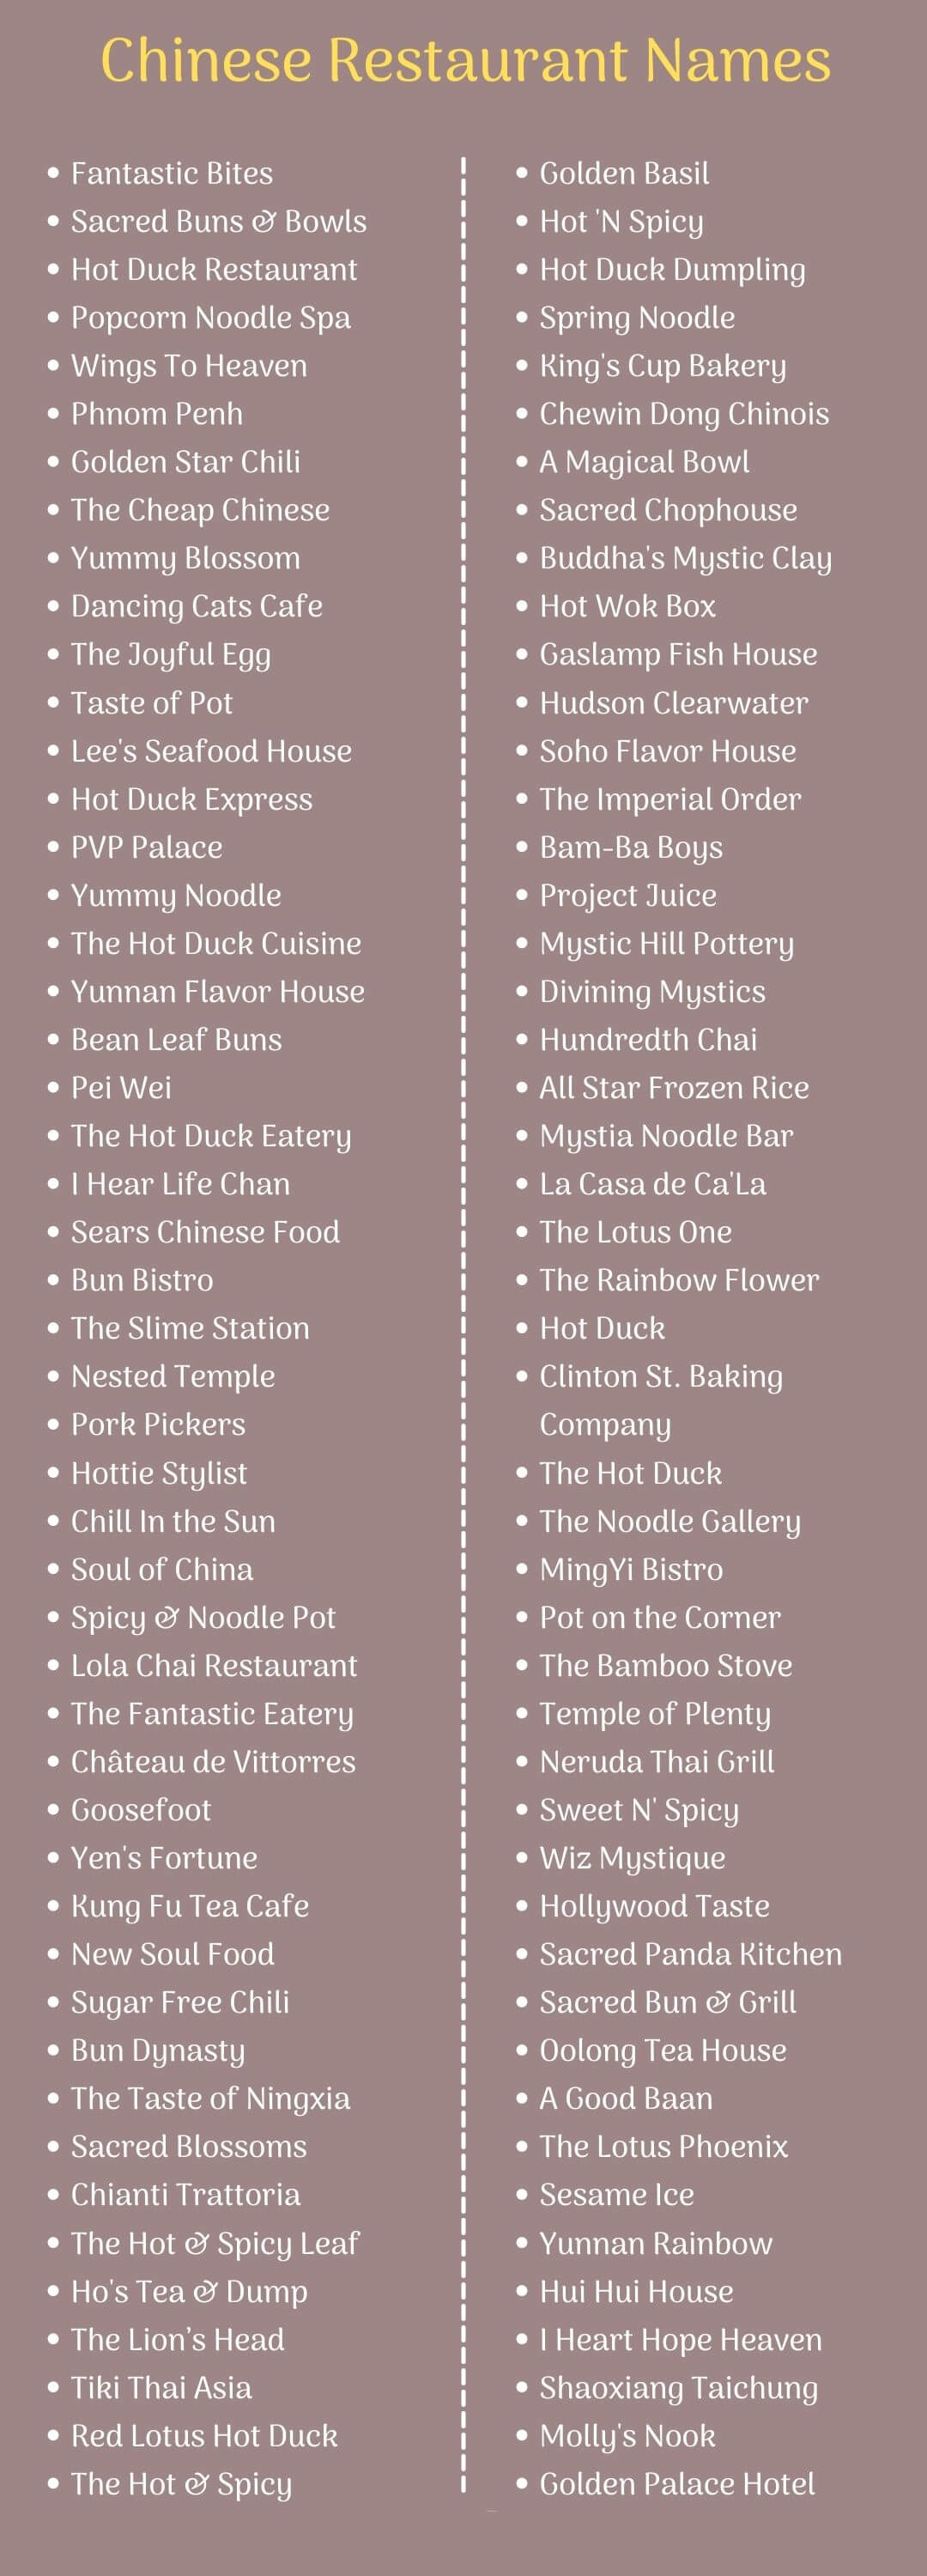 Chinese Restaurant Names: Infographic